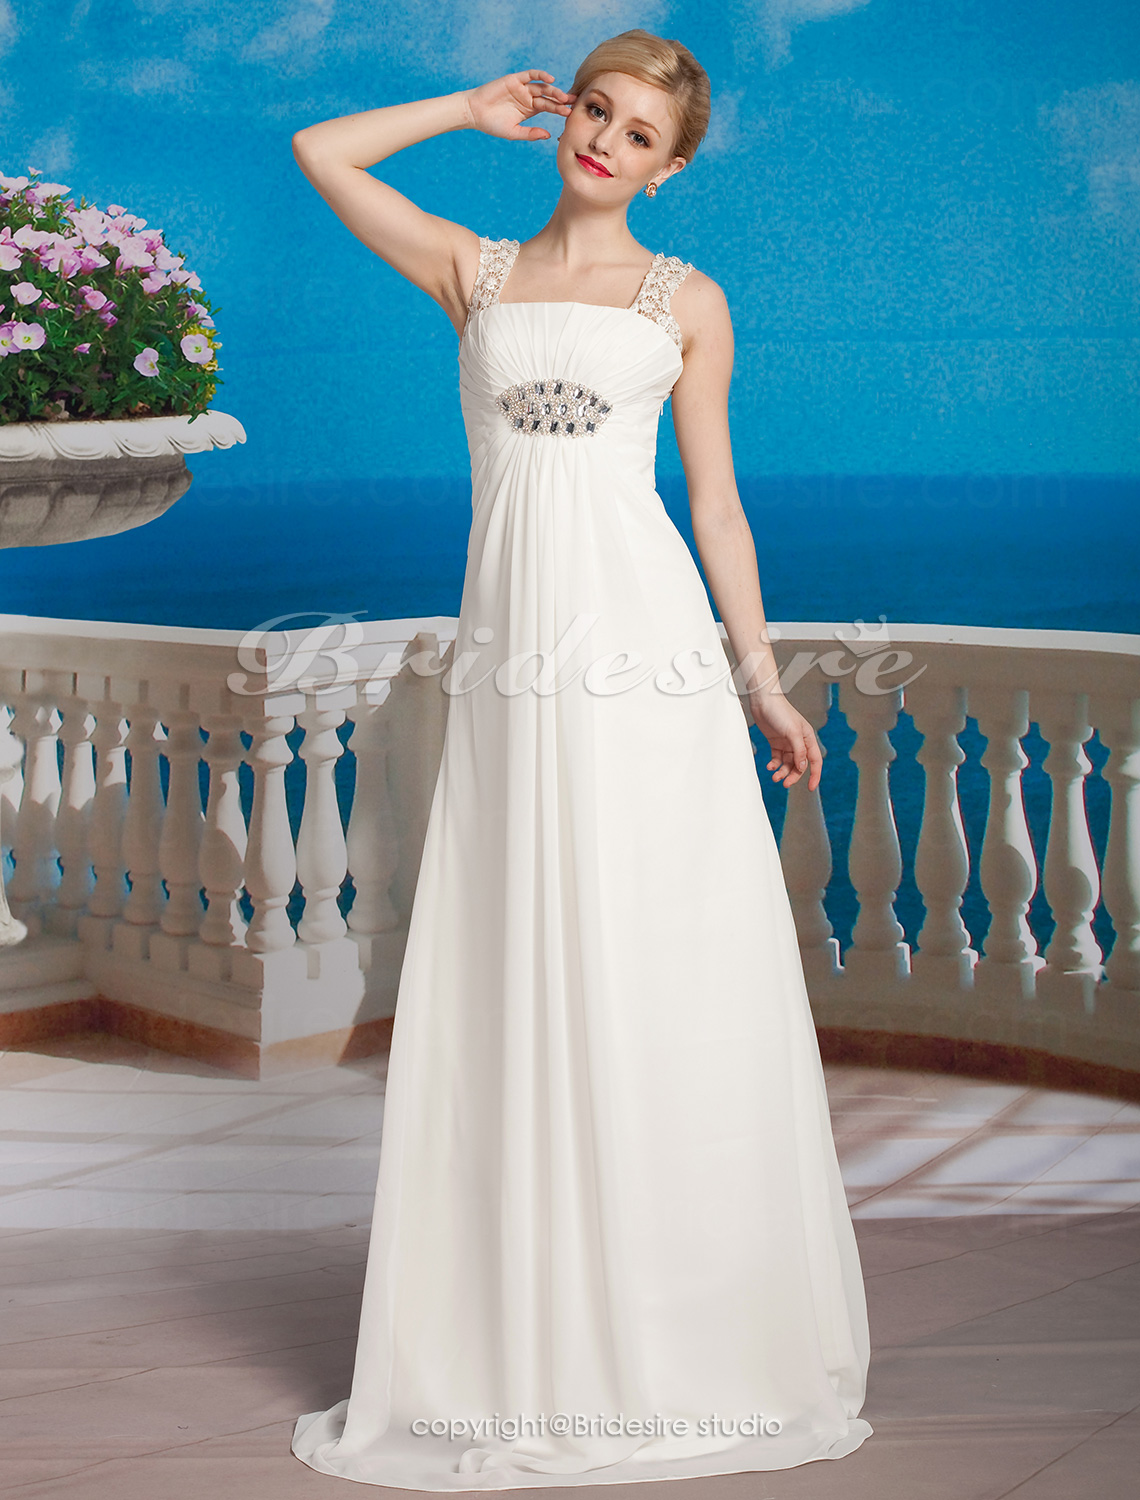 Sheath/ Column Chiffon Floor-length Square Wedding Dress